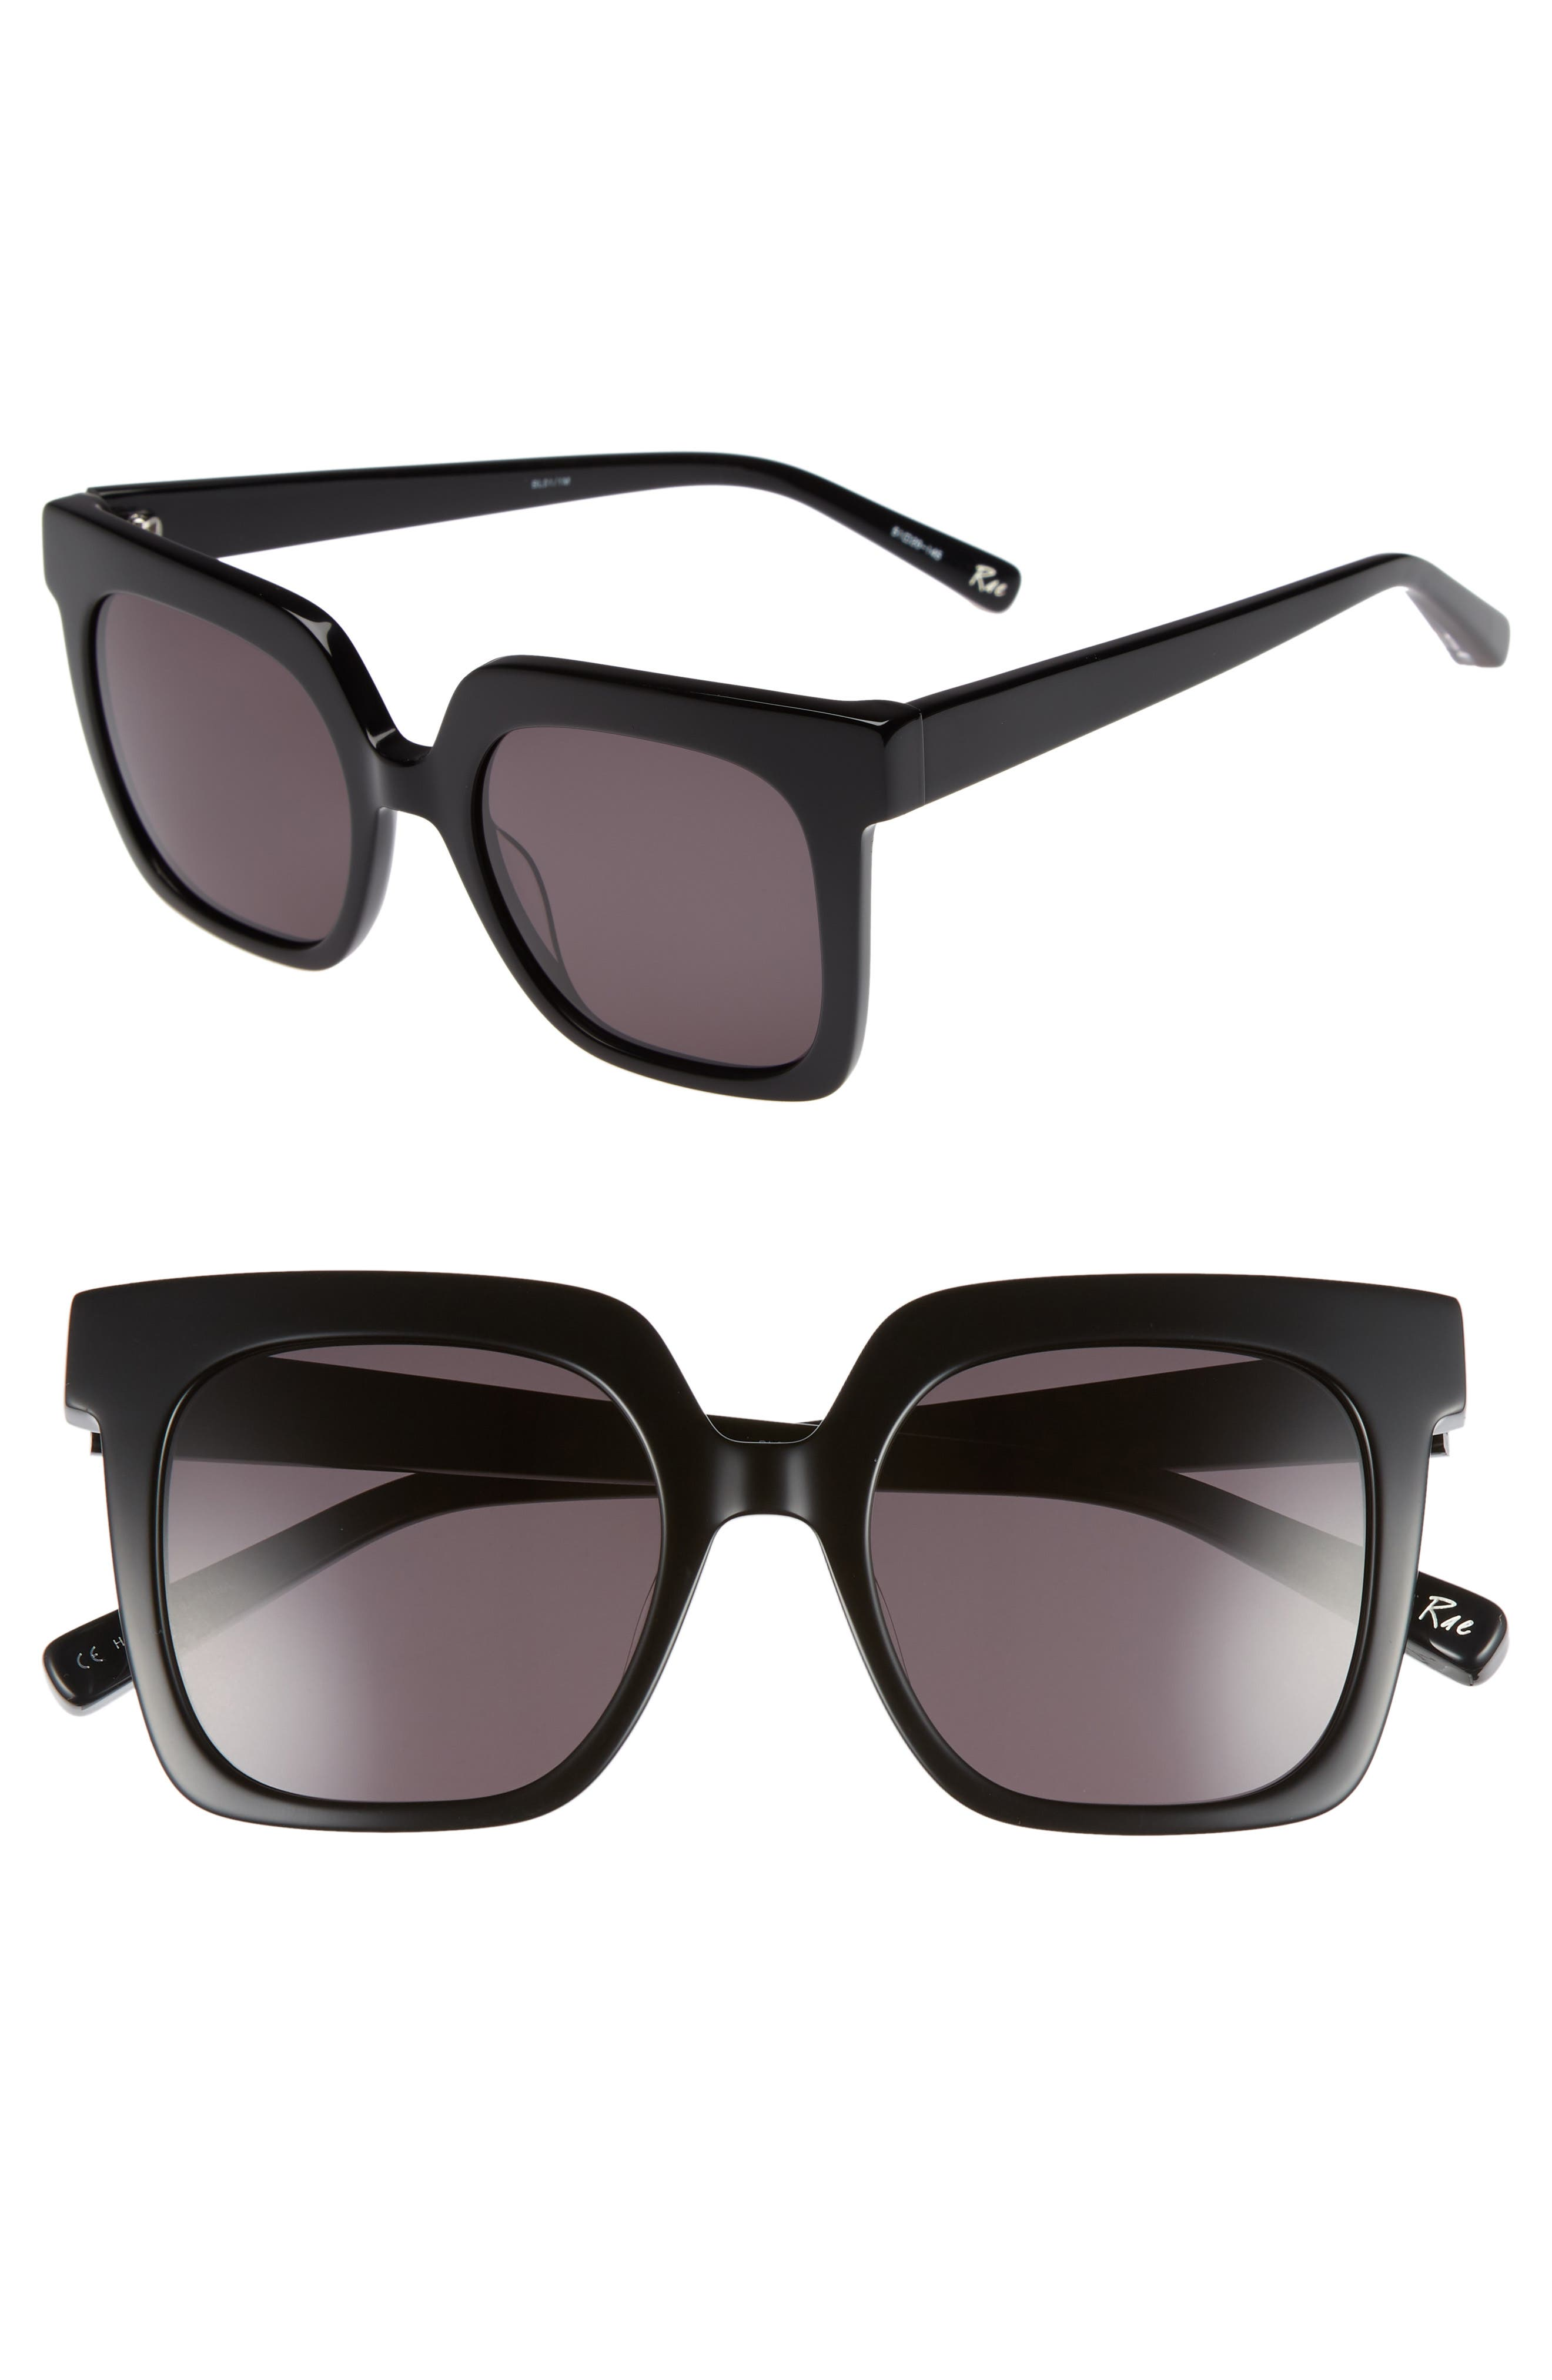 Main Image - Elizabeth and James Rae 51mm Square Sunglasses